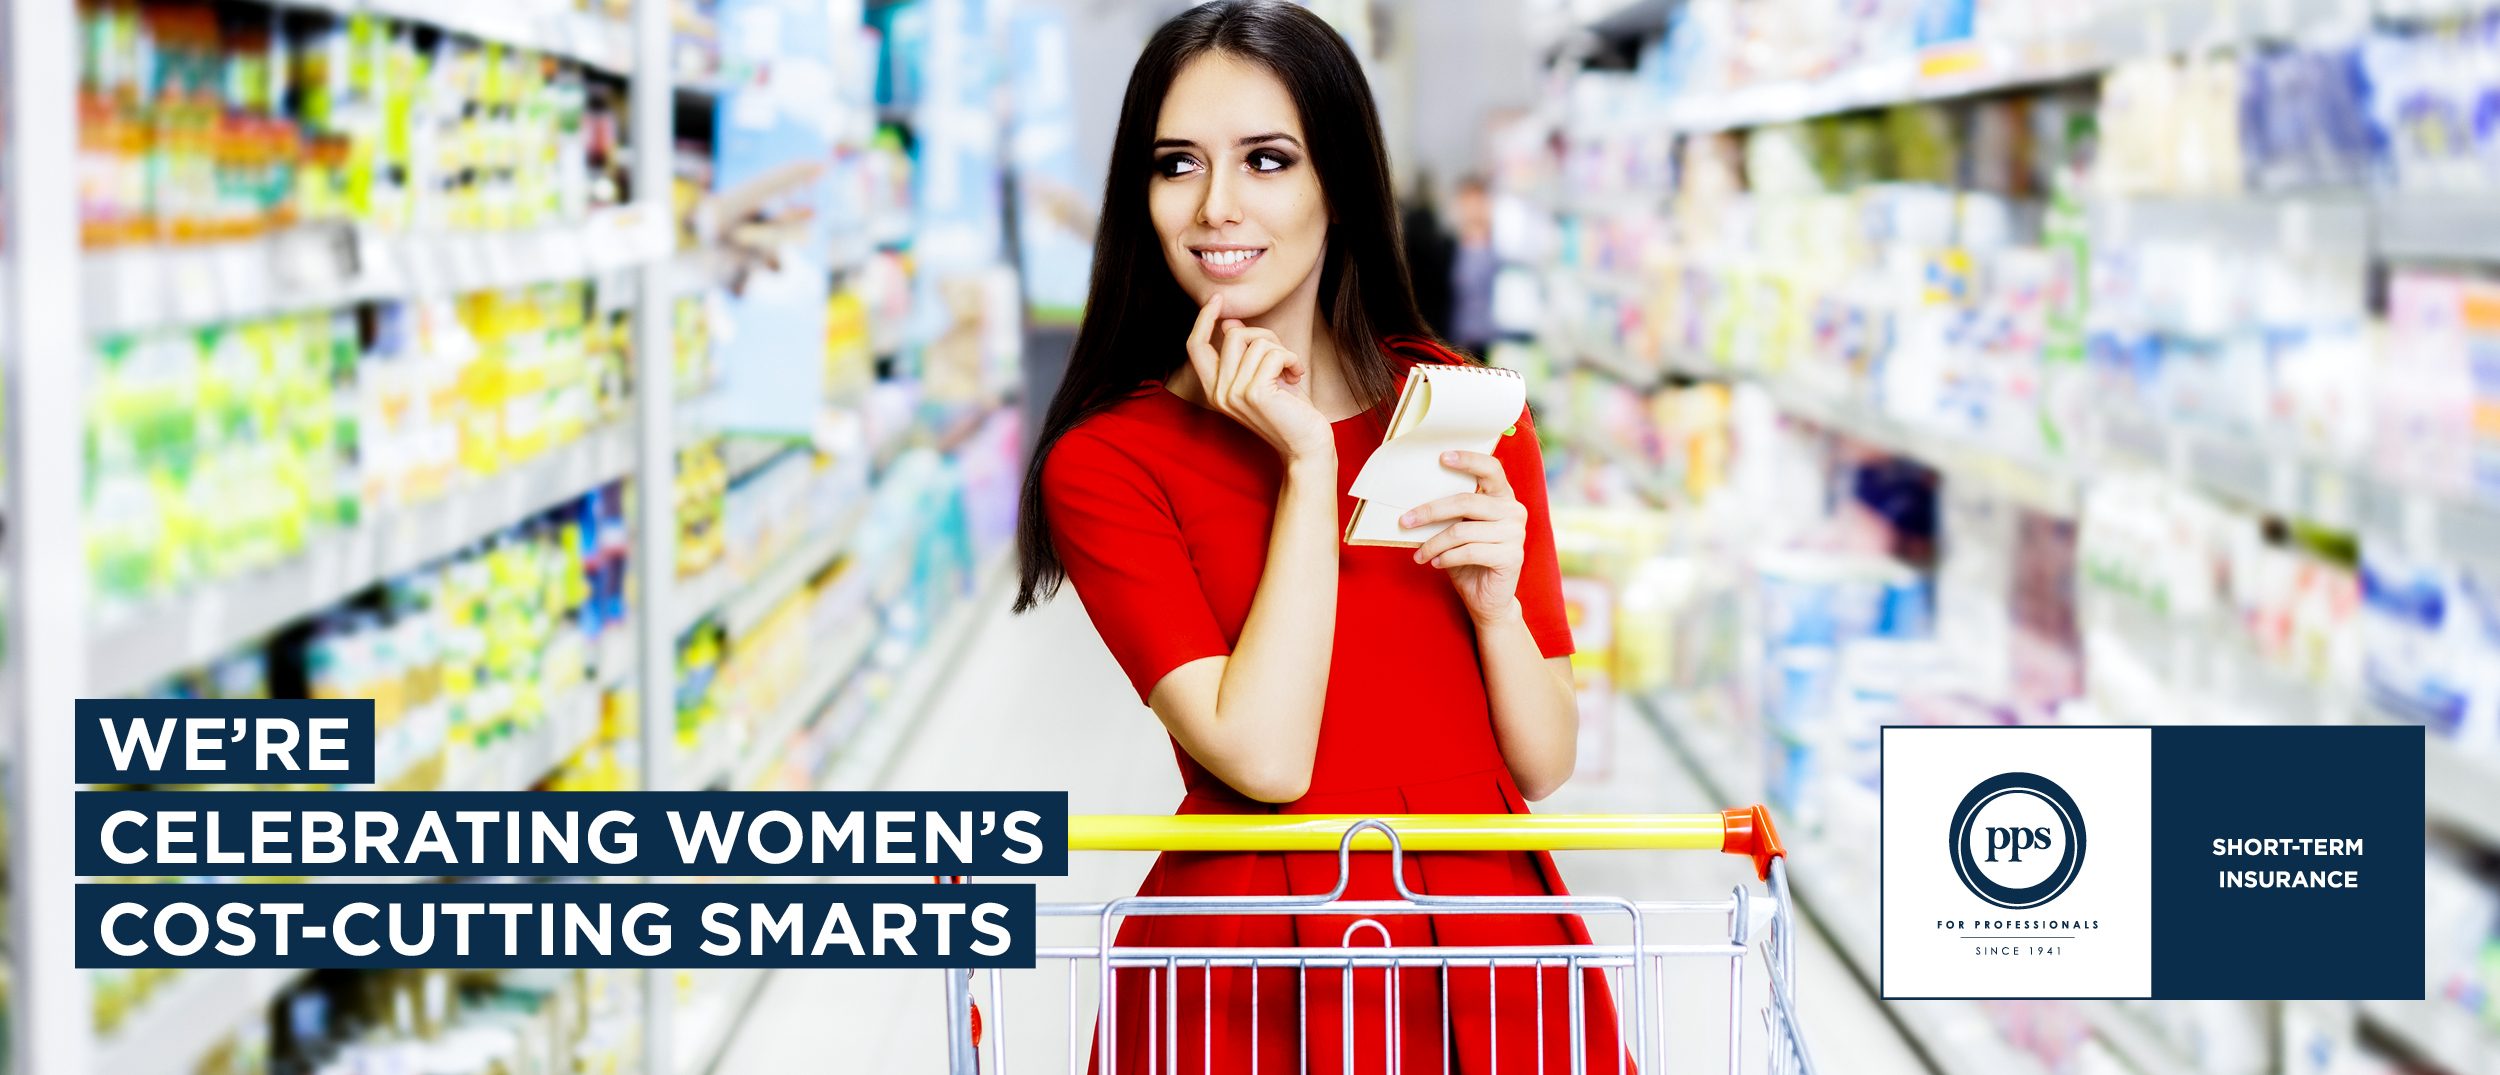 We're celebrating women's cost-cutting smarts